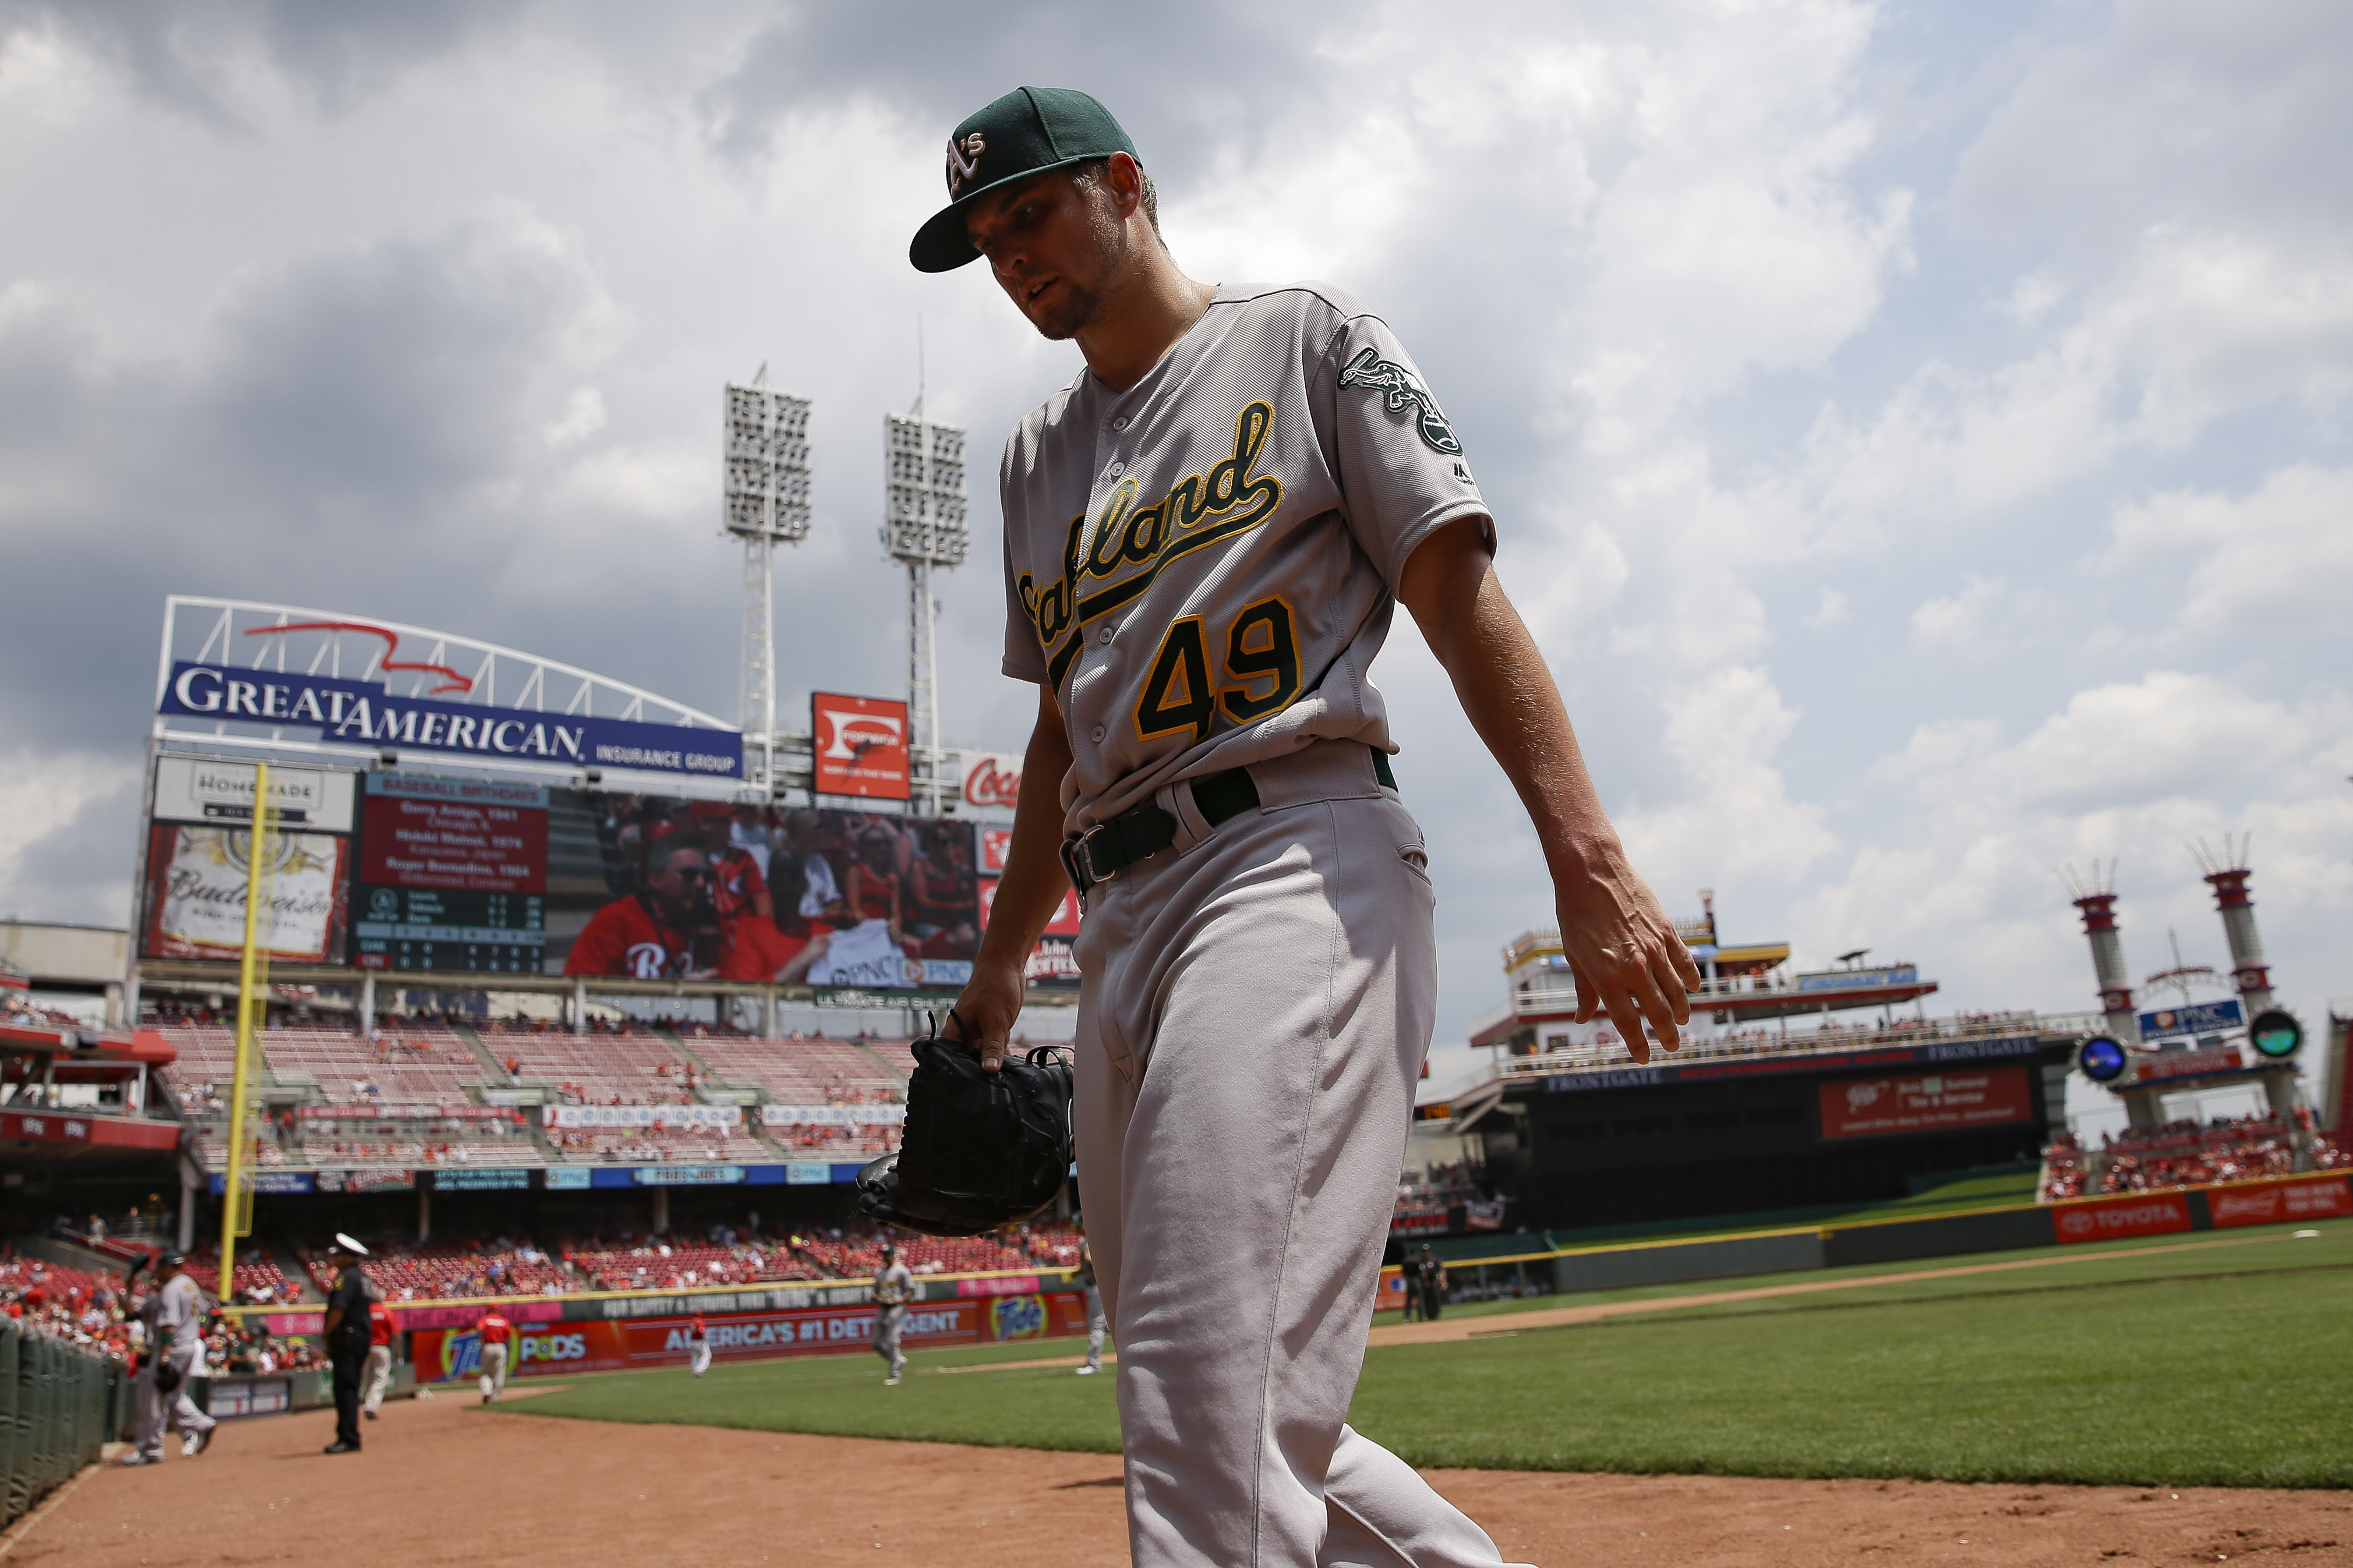 Oakland Athletics starting pitcher Kendall Graveman walks off the field after closing the fourth inning of a baseball game against the Cincinnati Reds, Sunday, June 12, 2016, in Cincinnati. (AP Photo/John Minchillo)